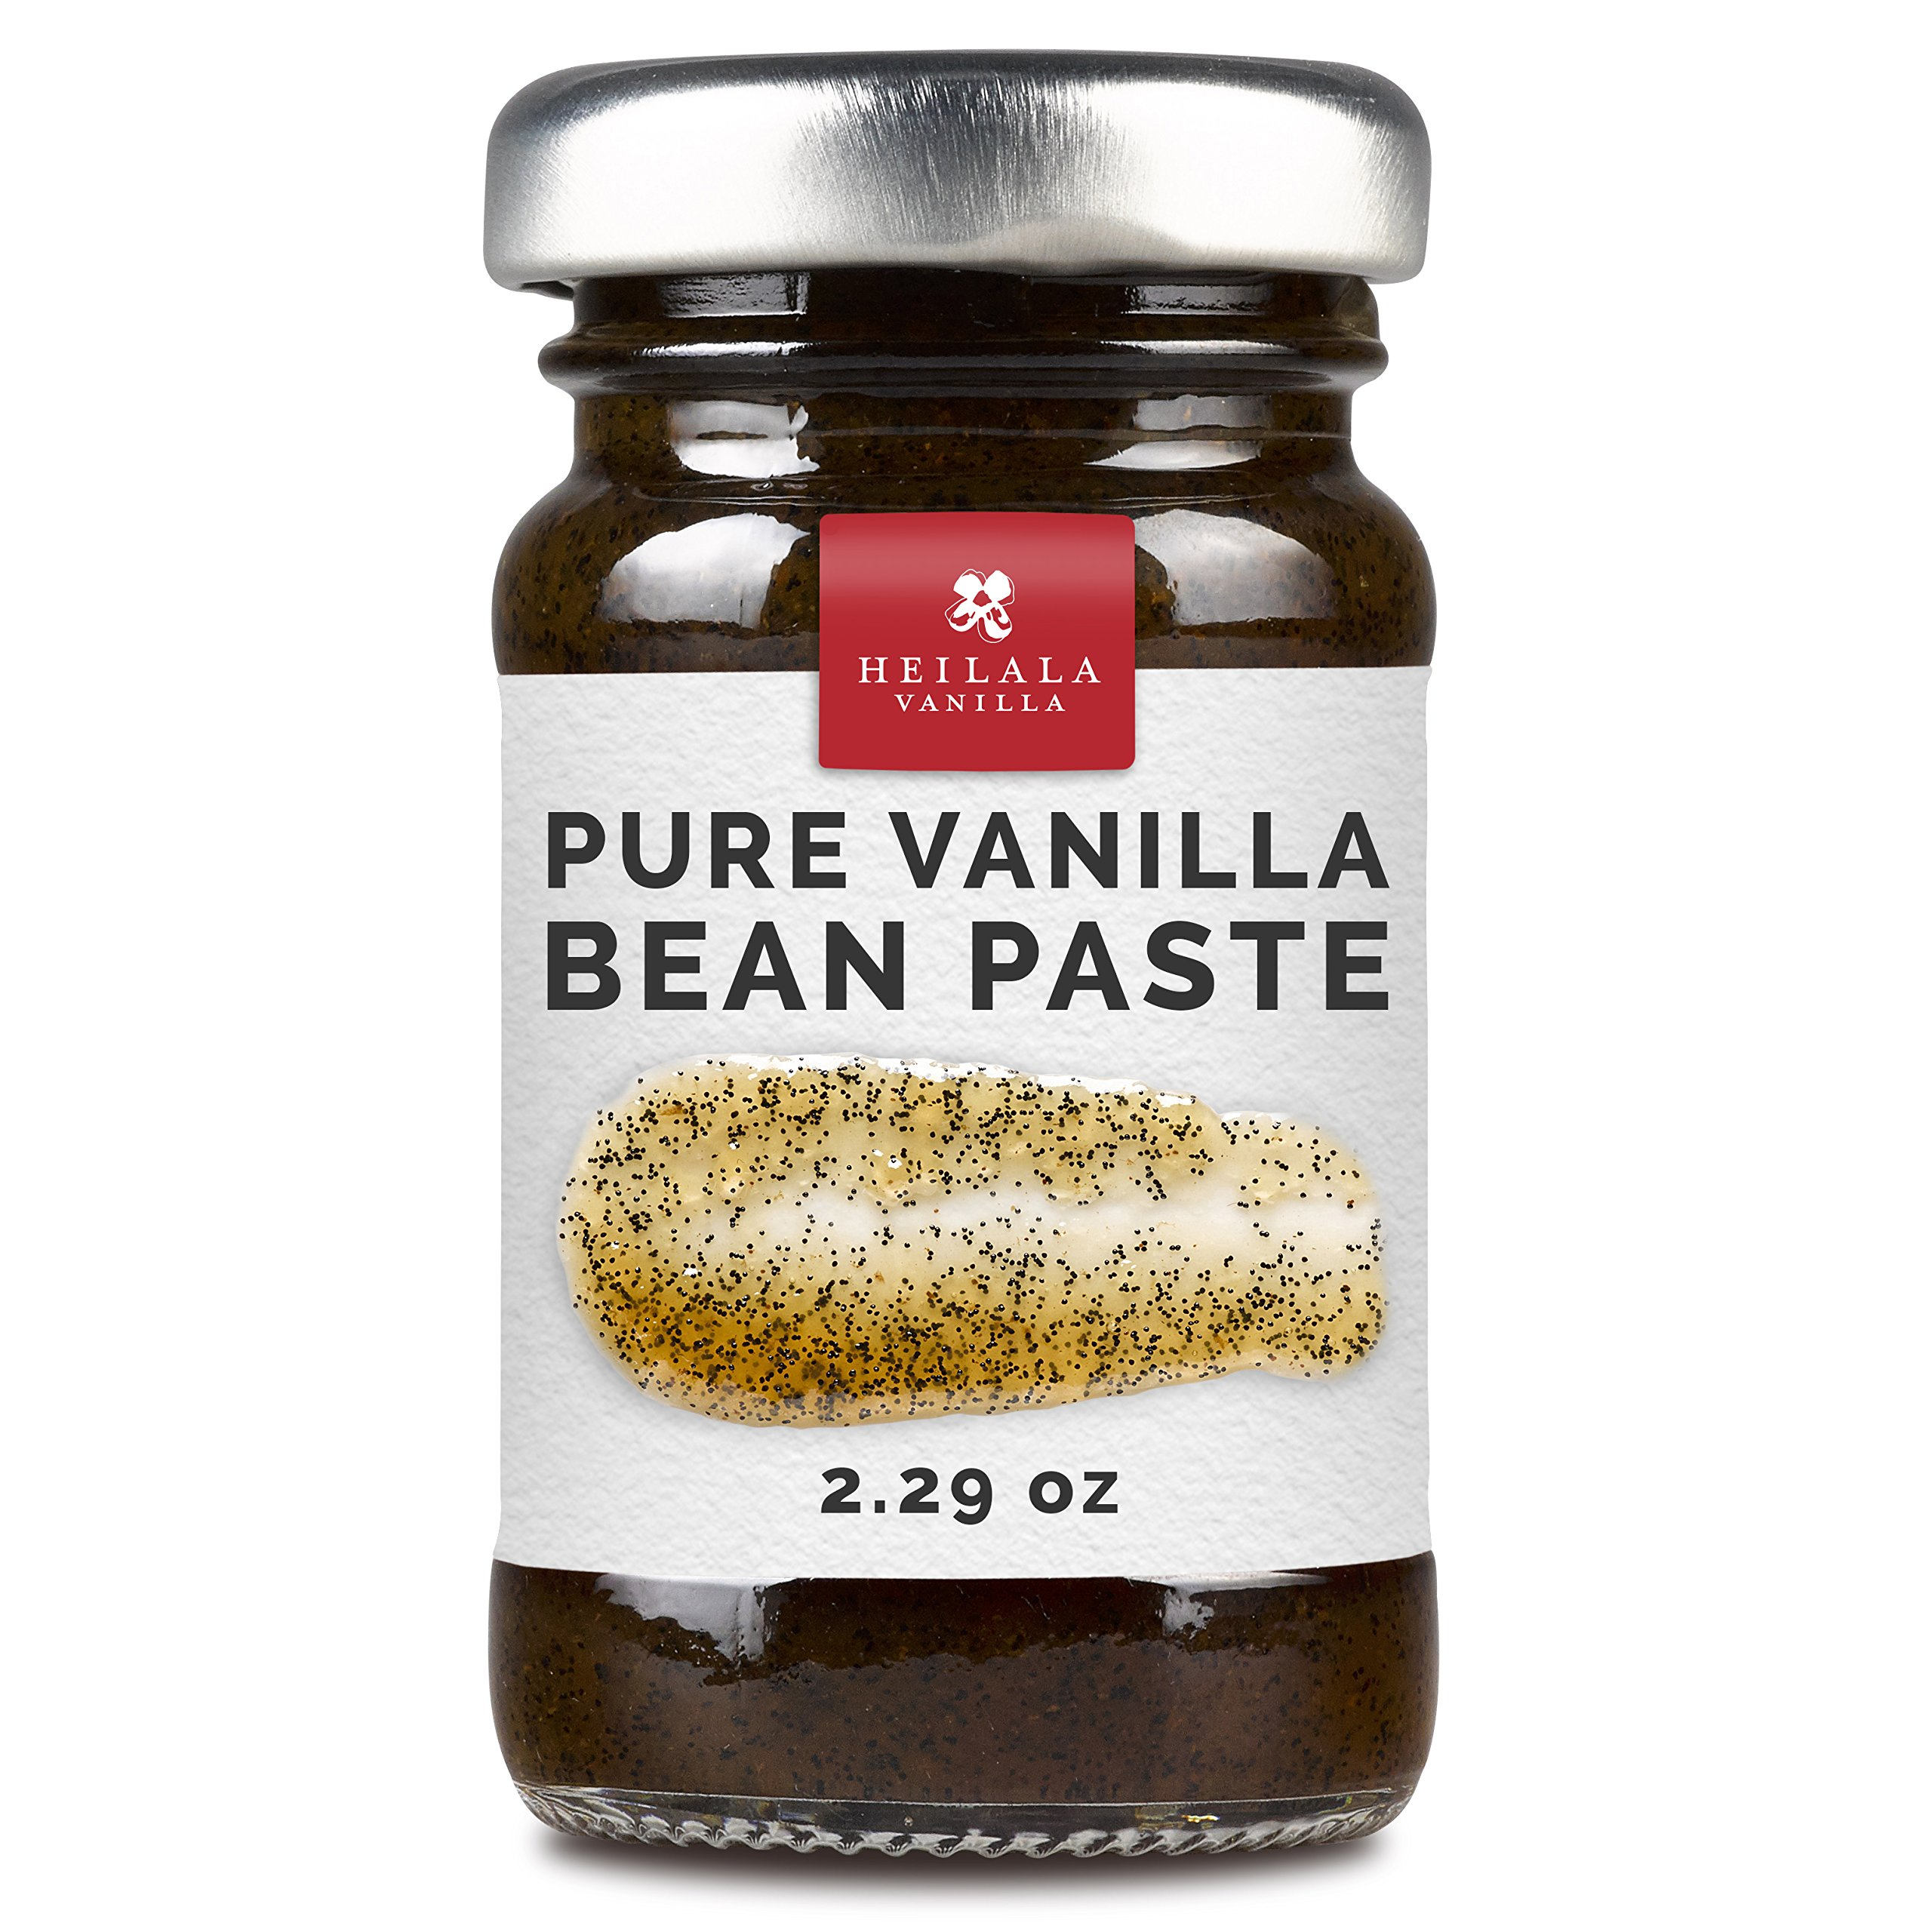 Gourmet Pure Vanilla Bean Pastes - Organically Grown, Contains Whole Vanilla Seeds from Hand Picked Vanilla Pods, All Natural, Superior to Tahitian, Mexican or Madagascar Paste - Perfect for Baking